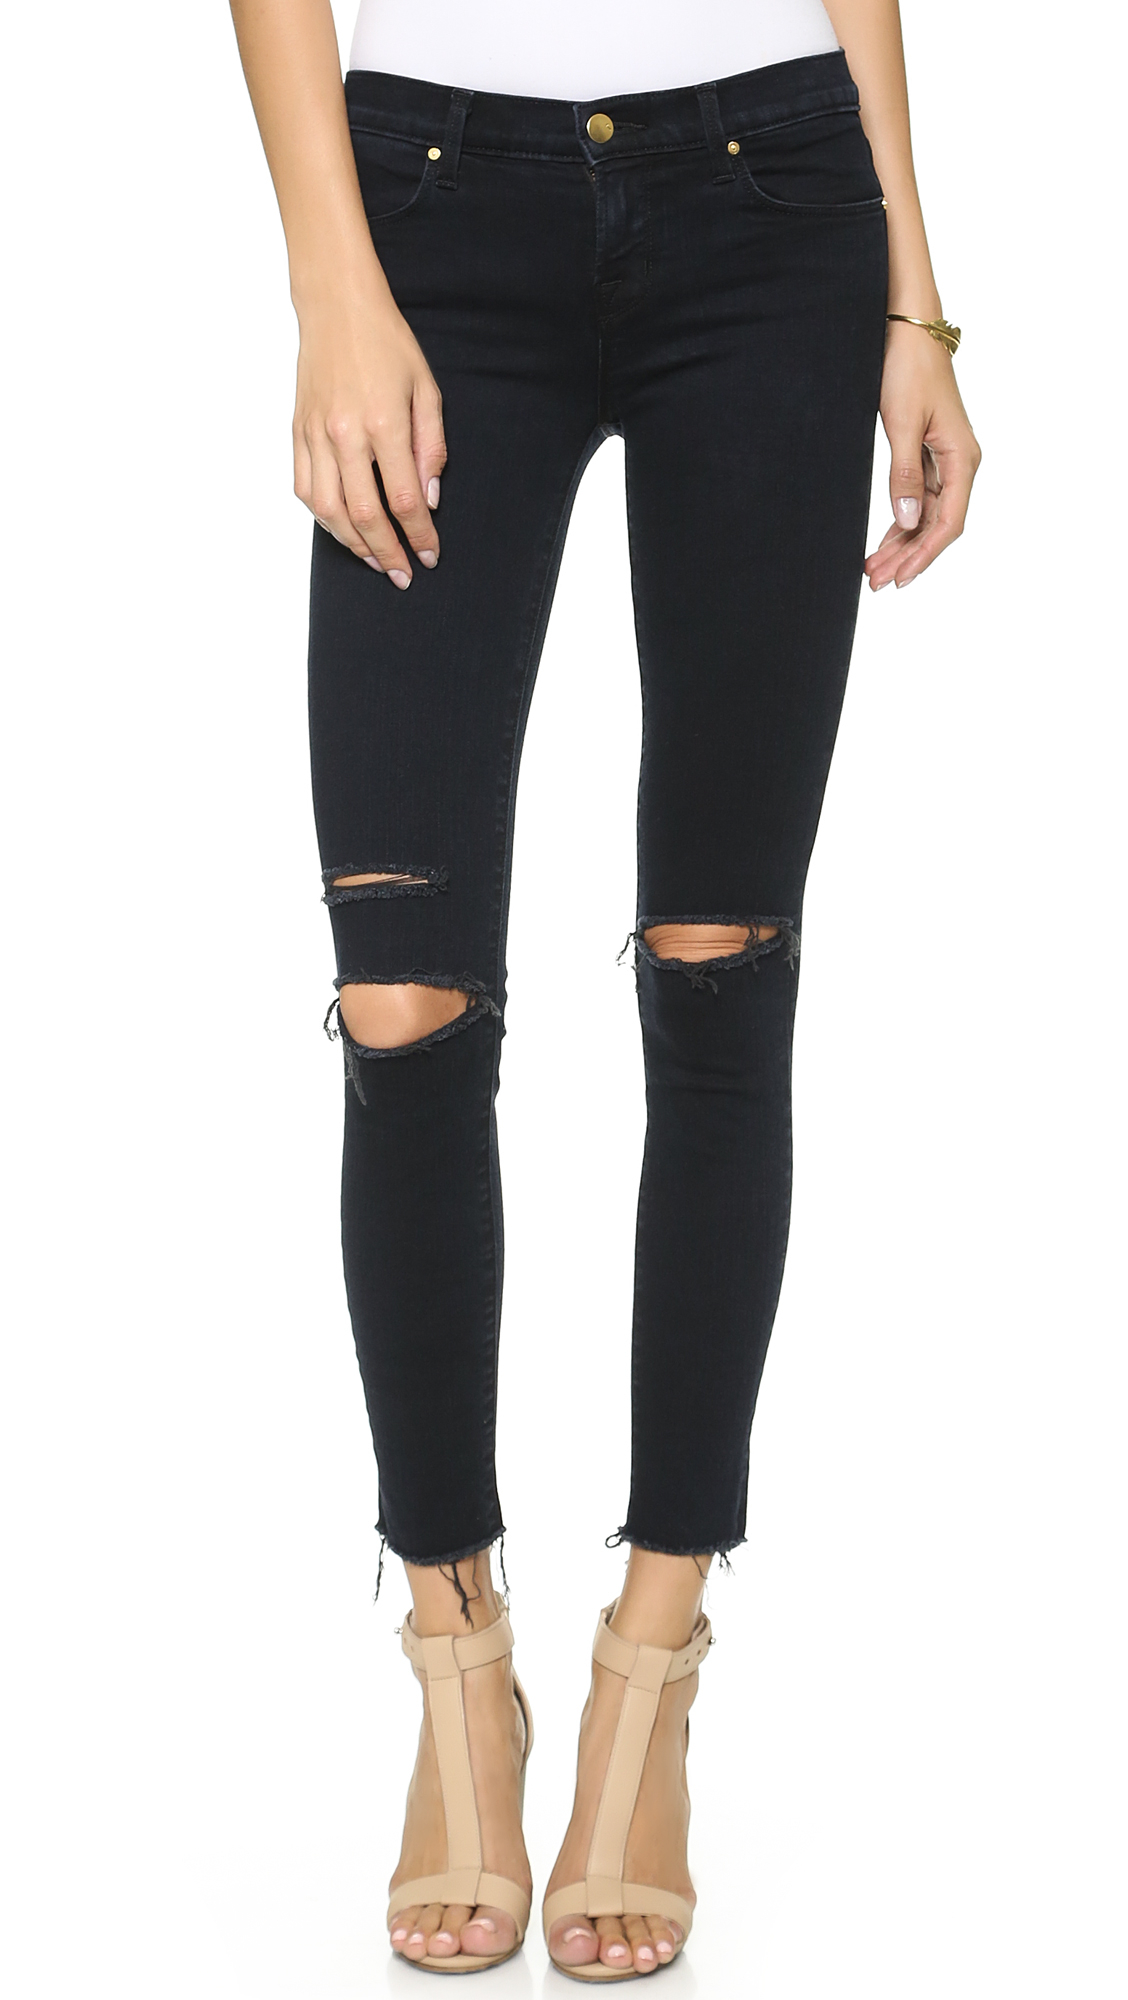 Lyst - J Brand 8227 Mid Rise Ankle Skinny Jeans in Blue